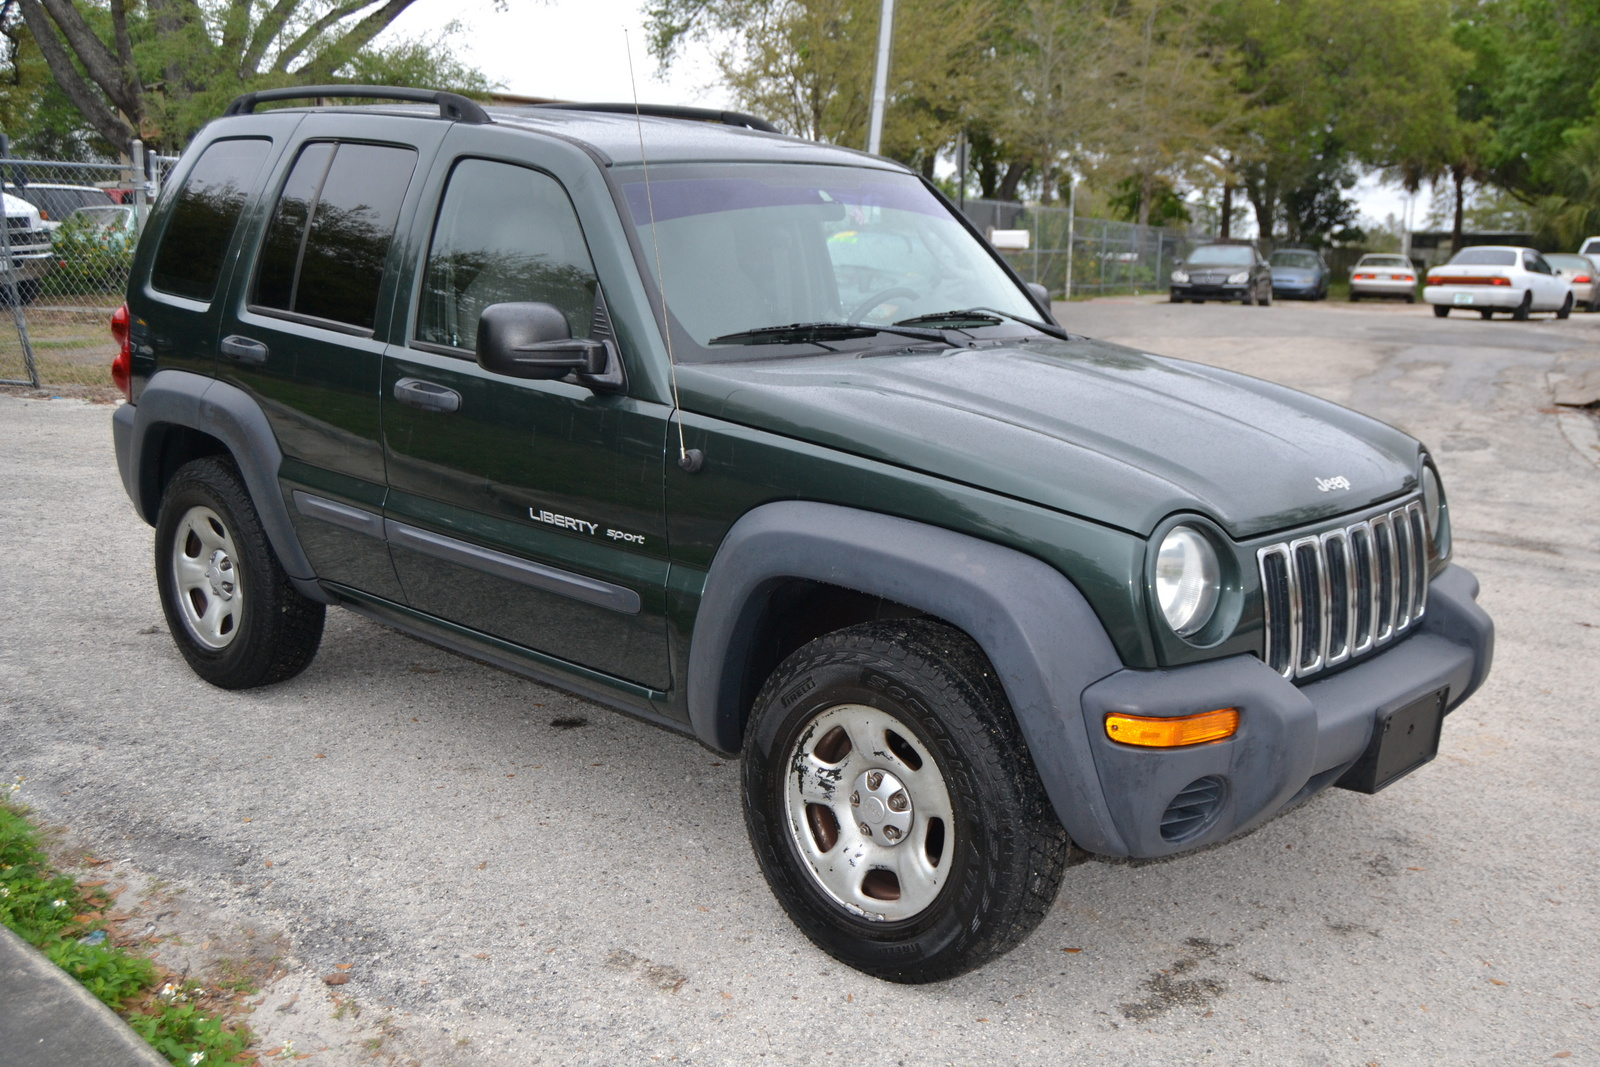 Picture of 2003 Jeep Liberty Sport exterior